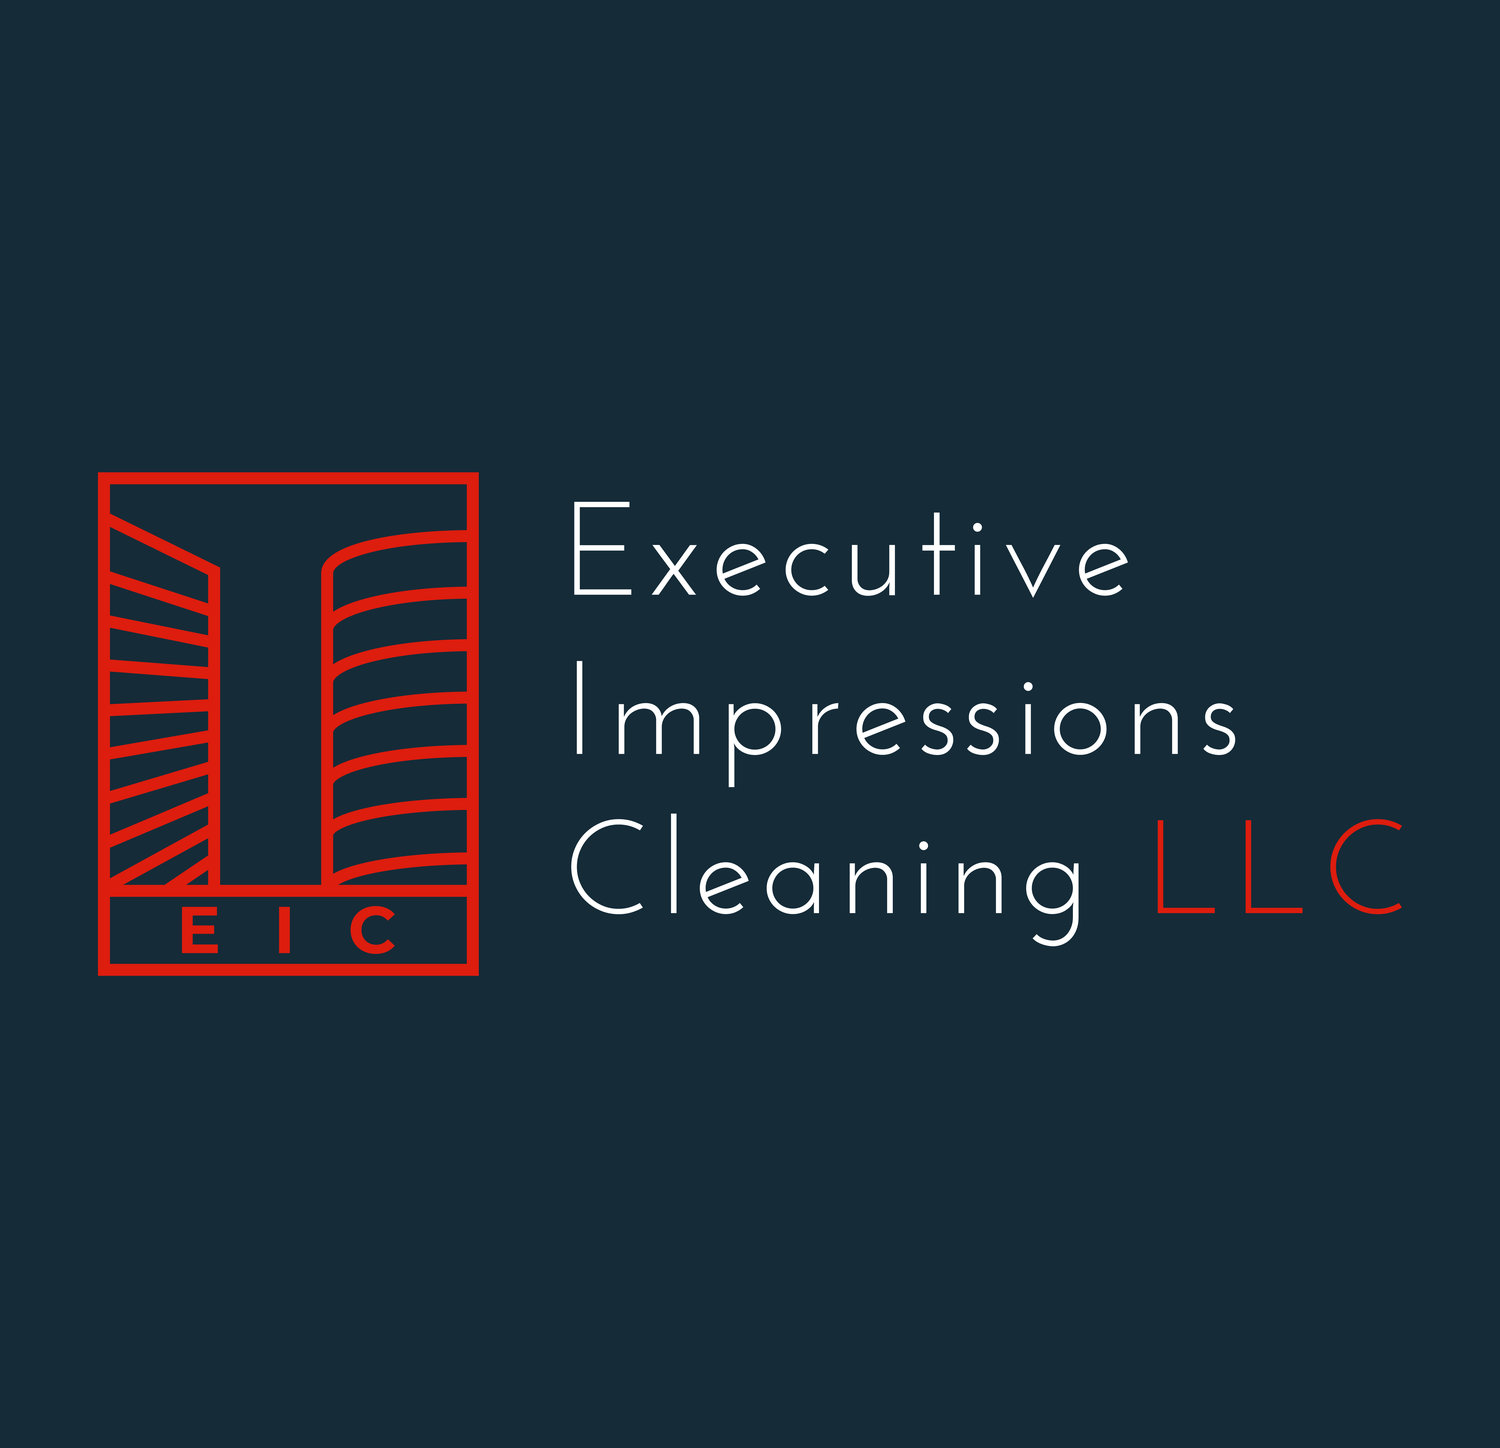 Executive Impressions Cleaning LLC